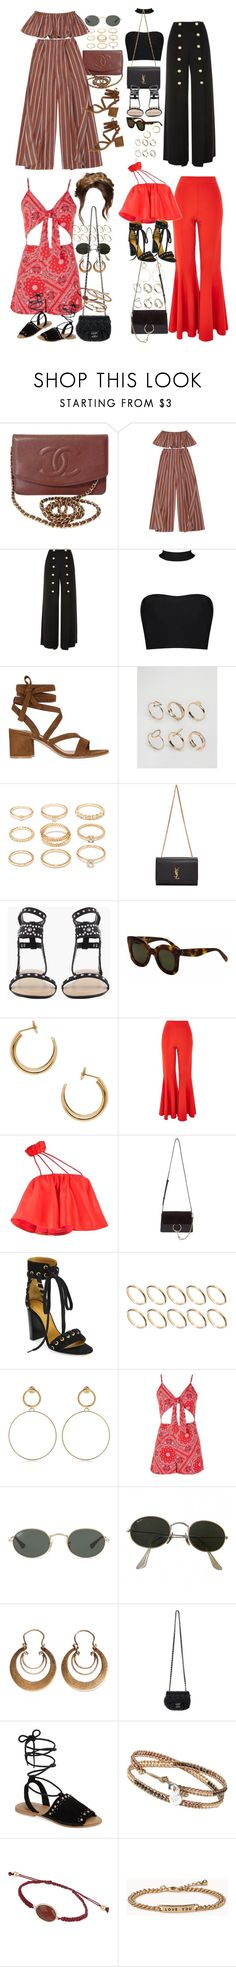 """""""Inspired outfits for Harry's concert (requested)"""" by nikka-phillips ❤ liked on Polyvore featuring Chanel, Topshop, Gianvito Rossi, ALDO, Forever 21, Yves Saint Laurent, Maison Margiela, Chloé, ASOS and Maria Francesca Pepe"""